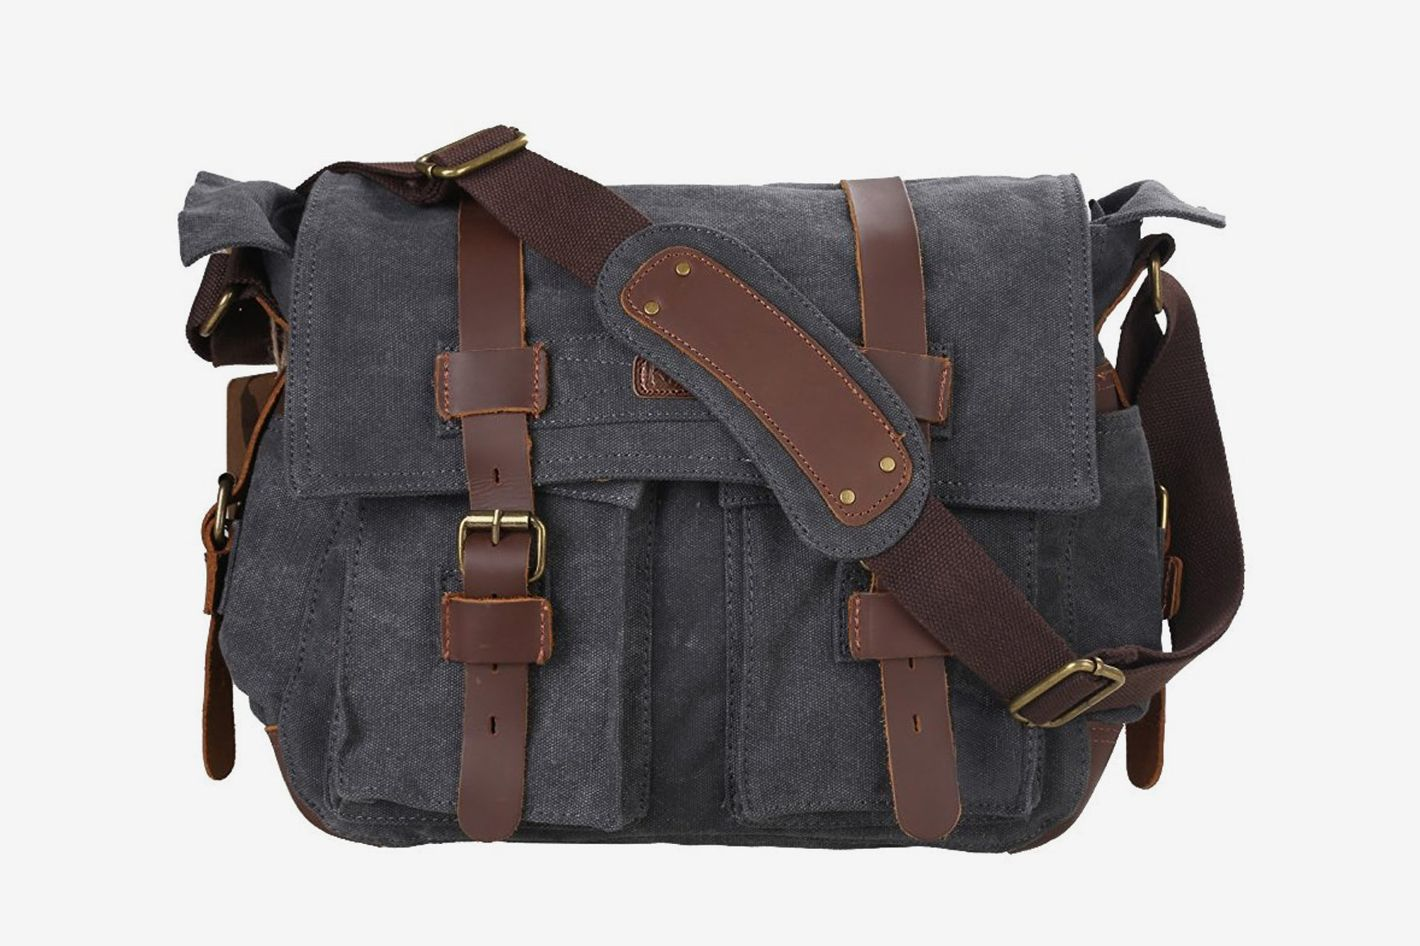 60f13c0a5c Kattee Leather Canvas Camera Bag Vintage DSLR SLR Messenger Shoulder Bag at  Amazon